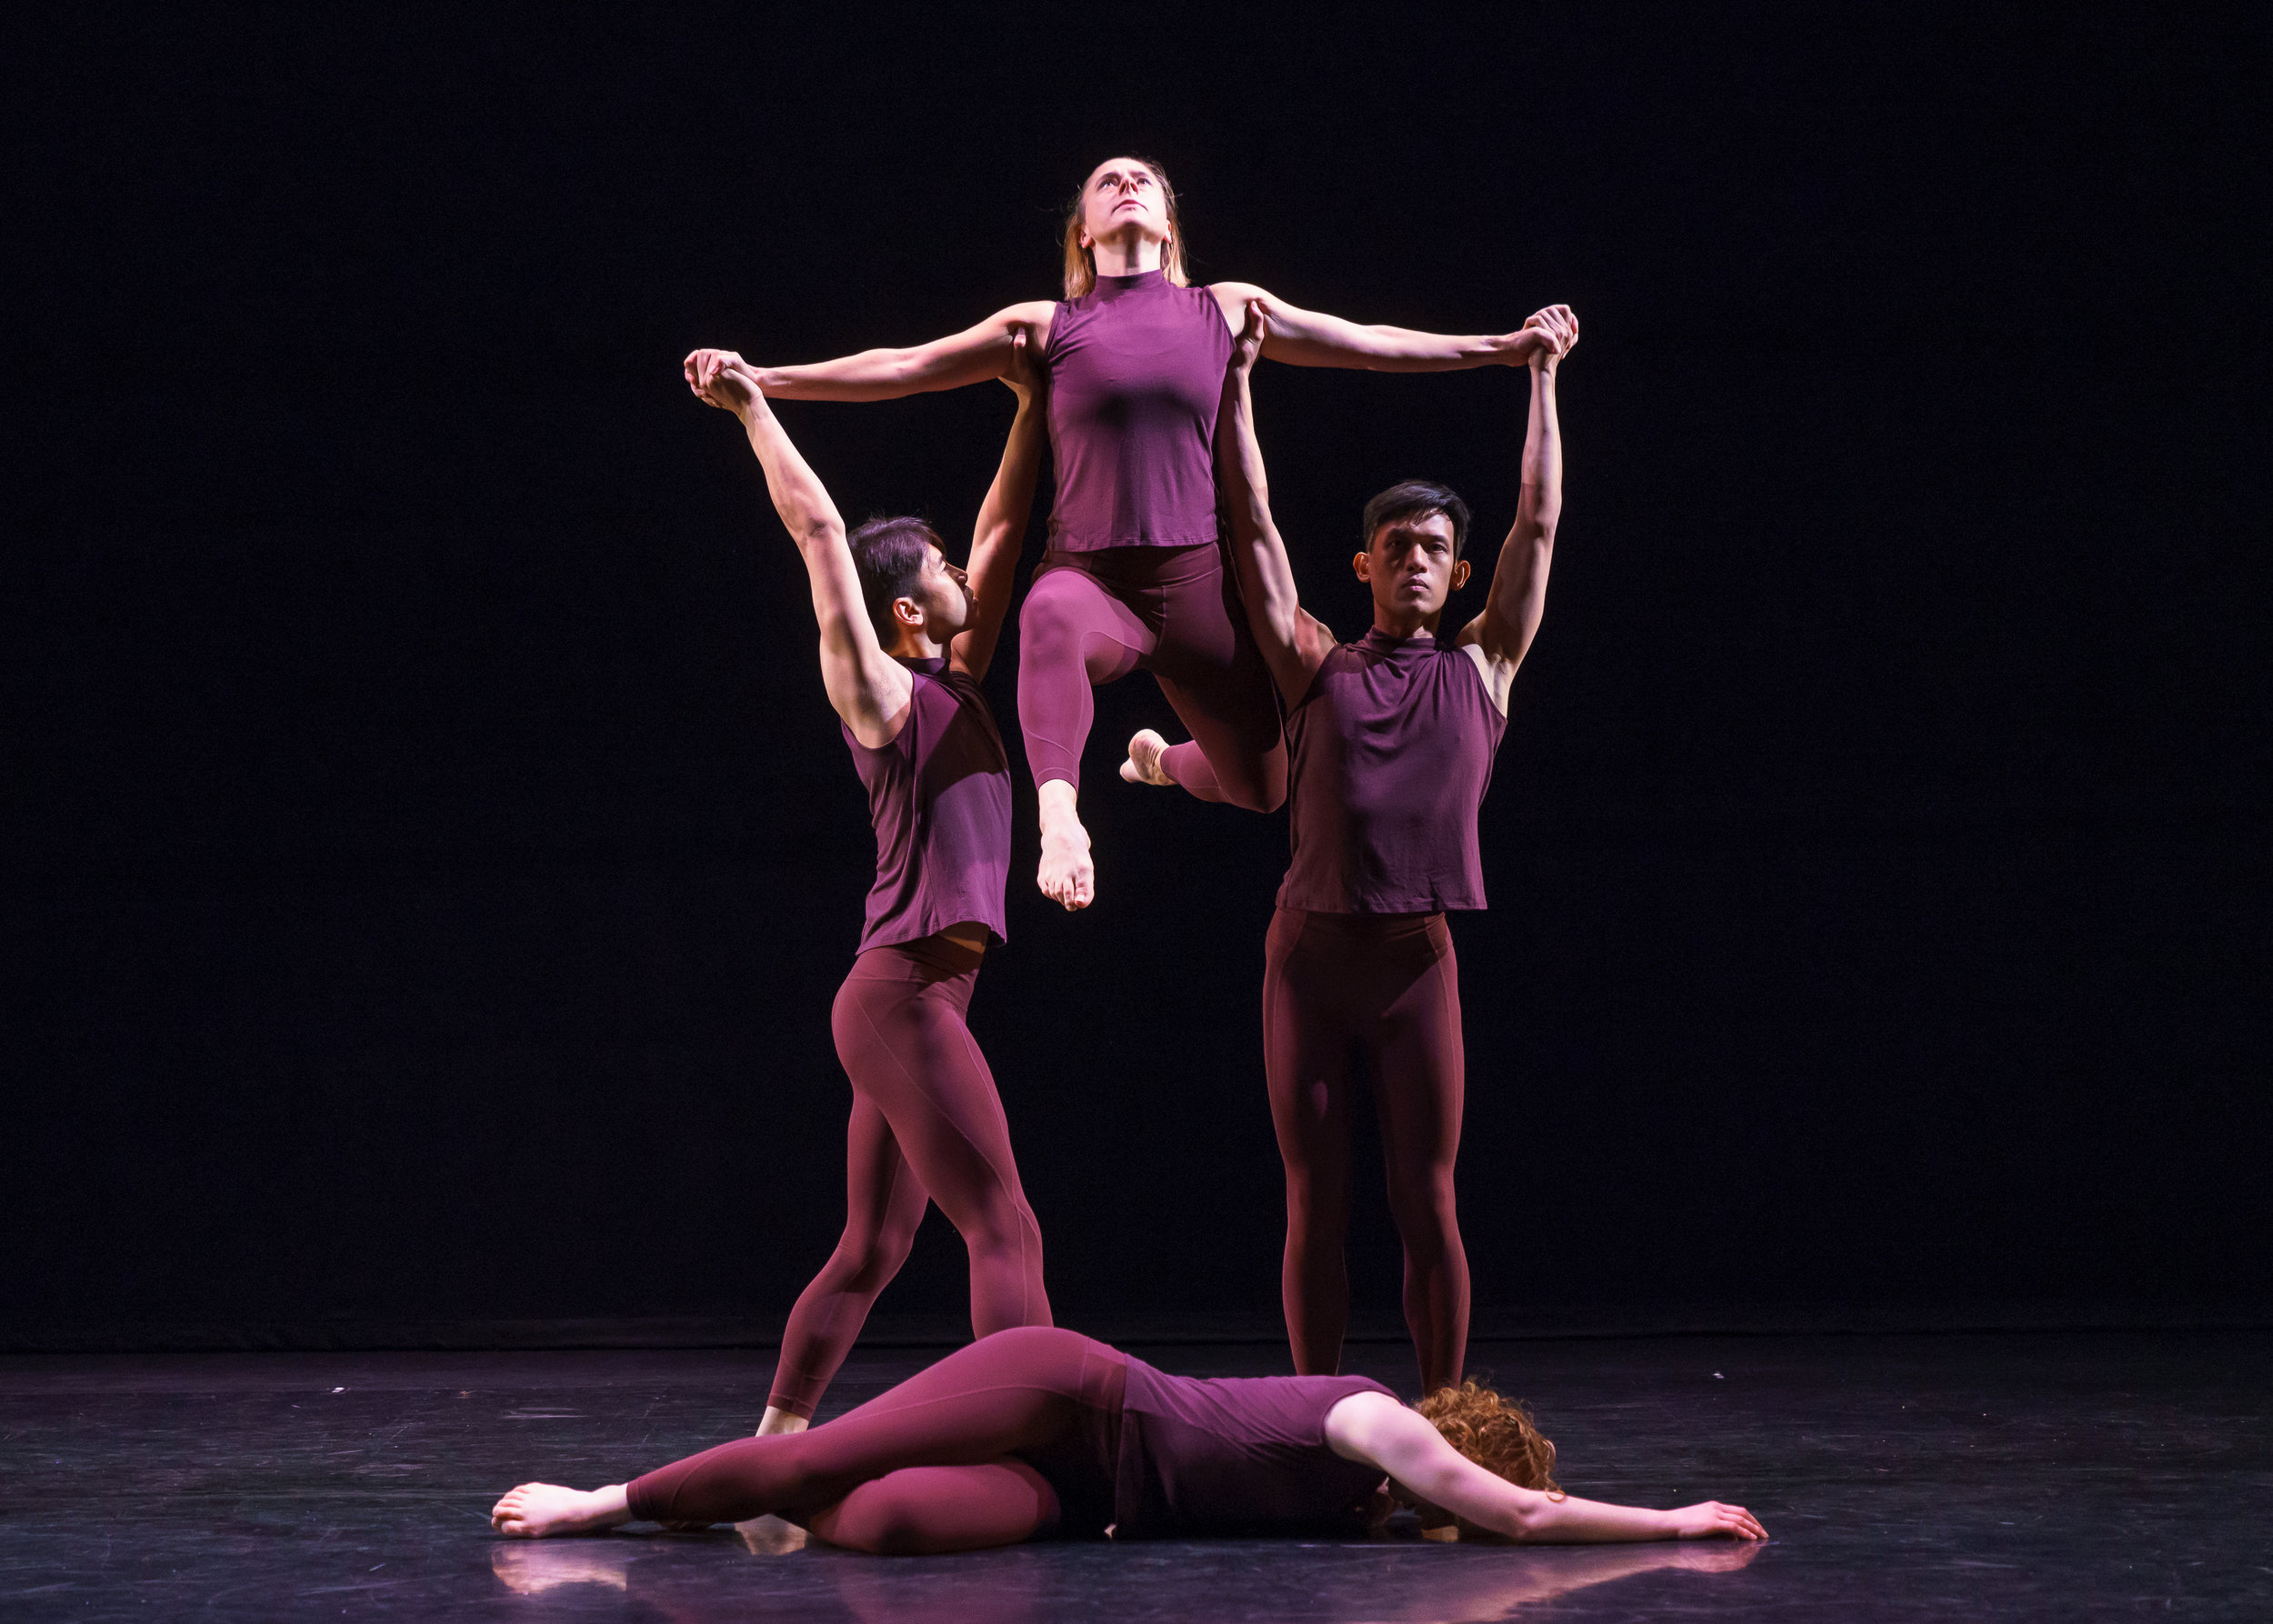 """Erin in performance with Sokolow Theatre Dance Ensemble in """"Moods"""" by Anna Sokolow  Photo by Stephen Pisano"""